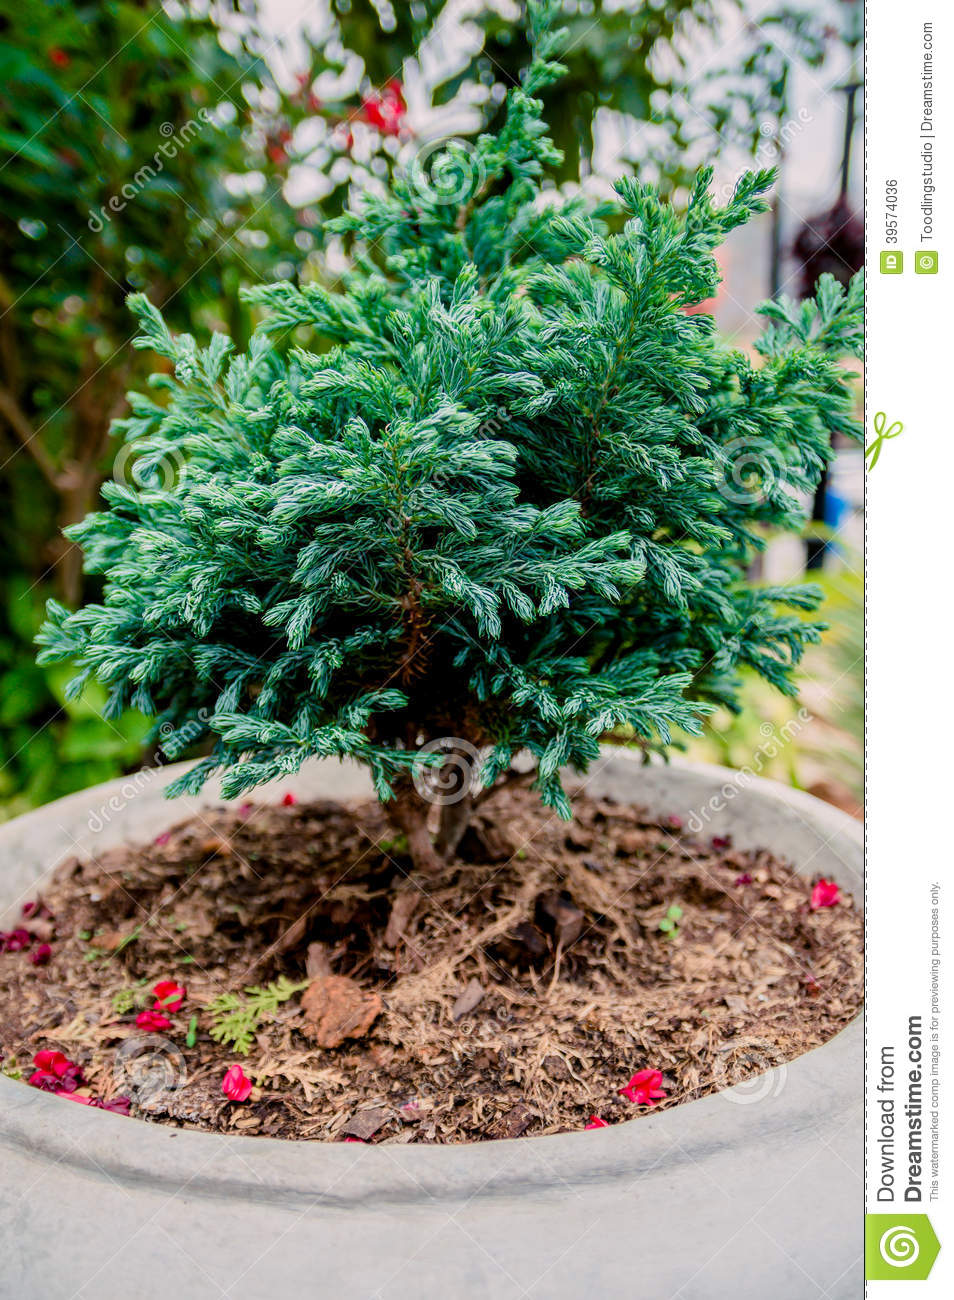 bonsai or dwarf pine trees stock photo  image, Natural flower